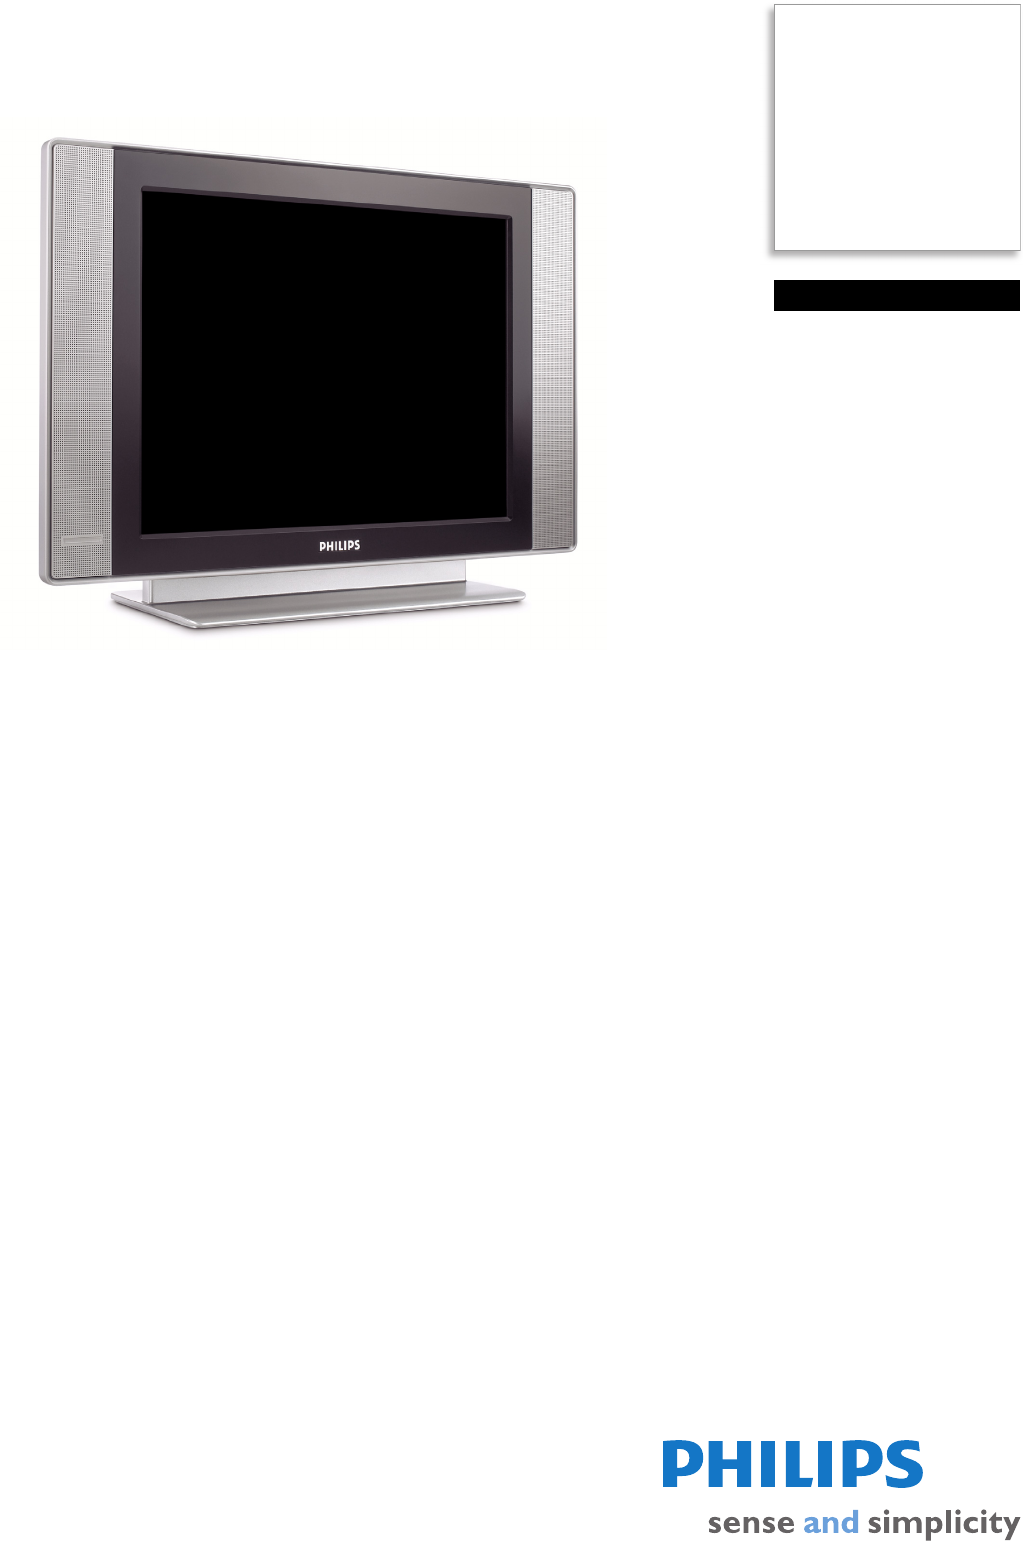 Philips Flat Panel Television 20HF4003F User Guide | ManualsOnline com